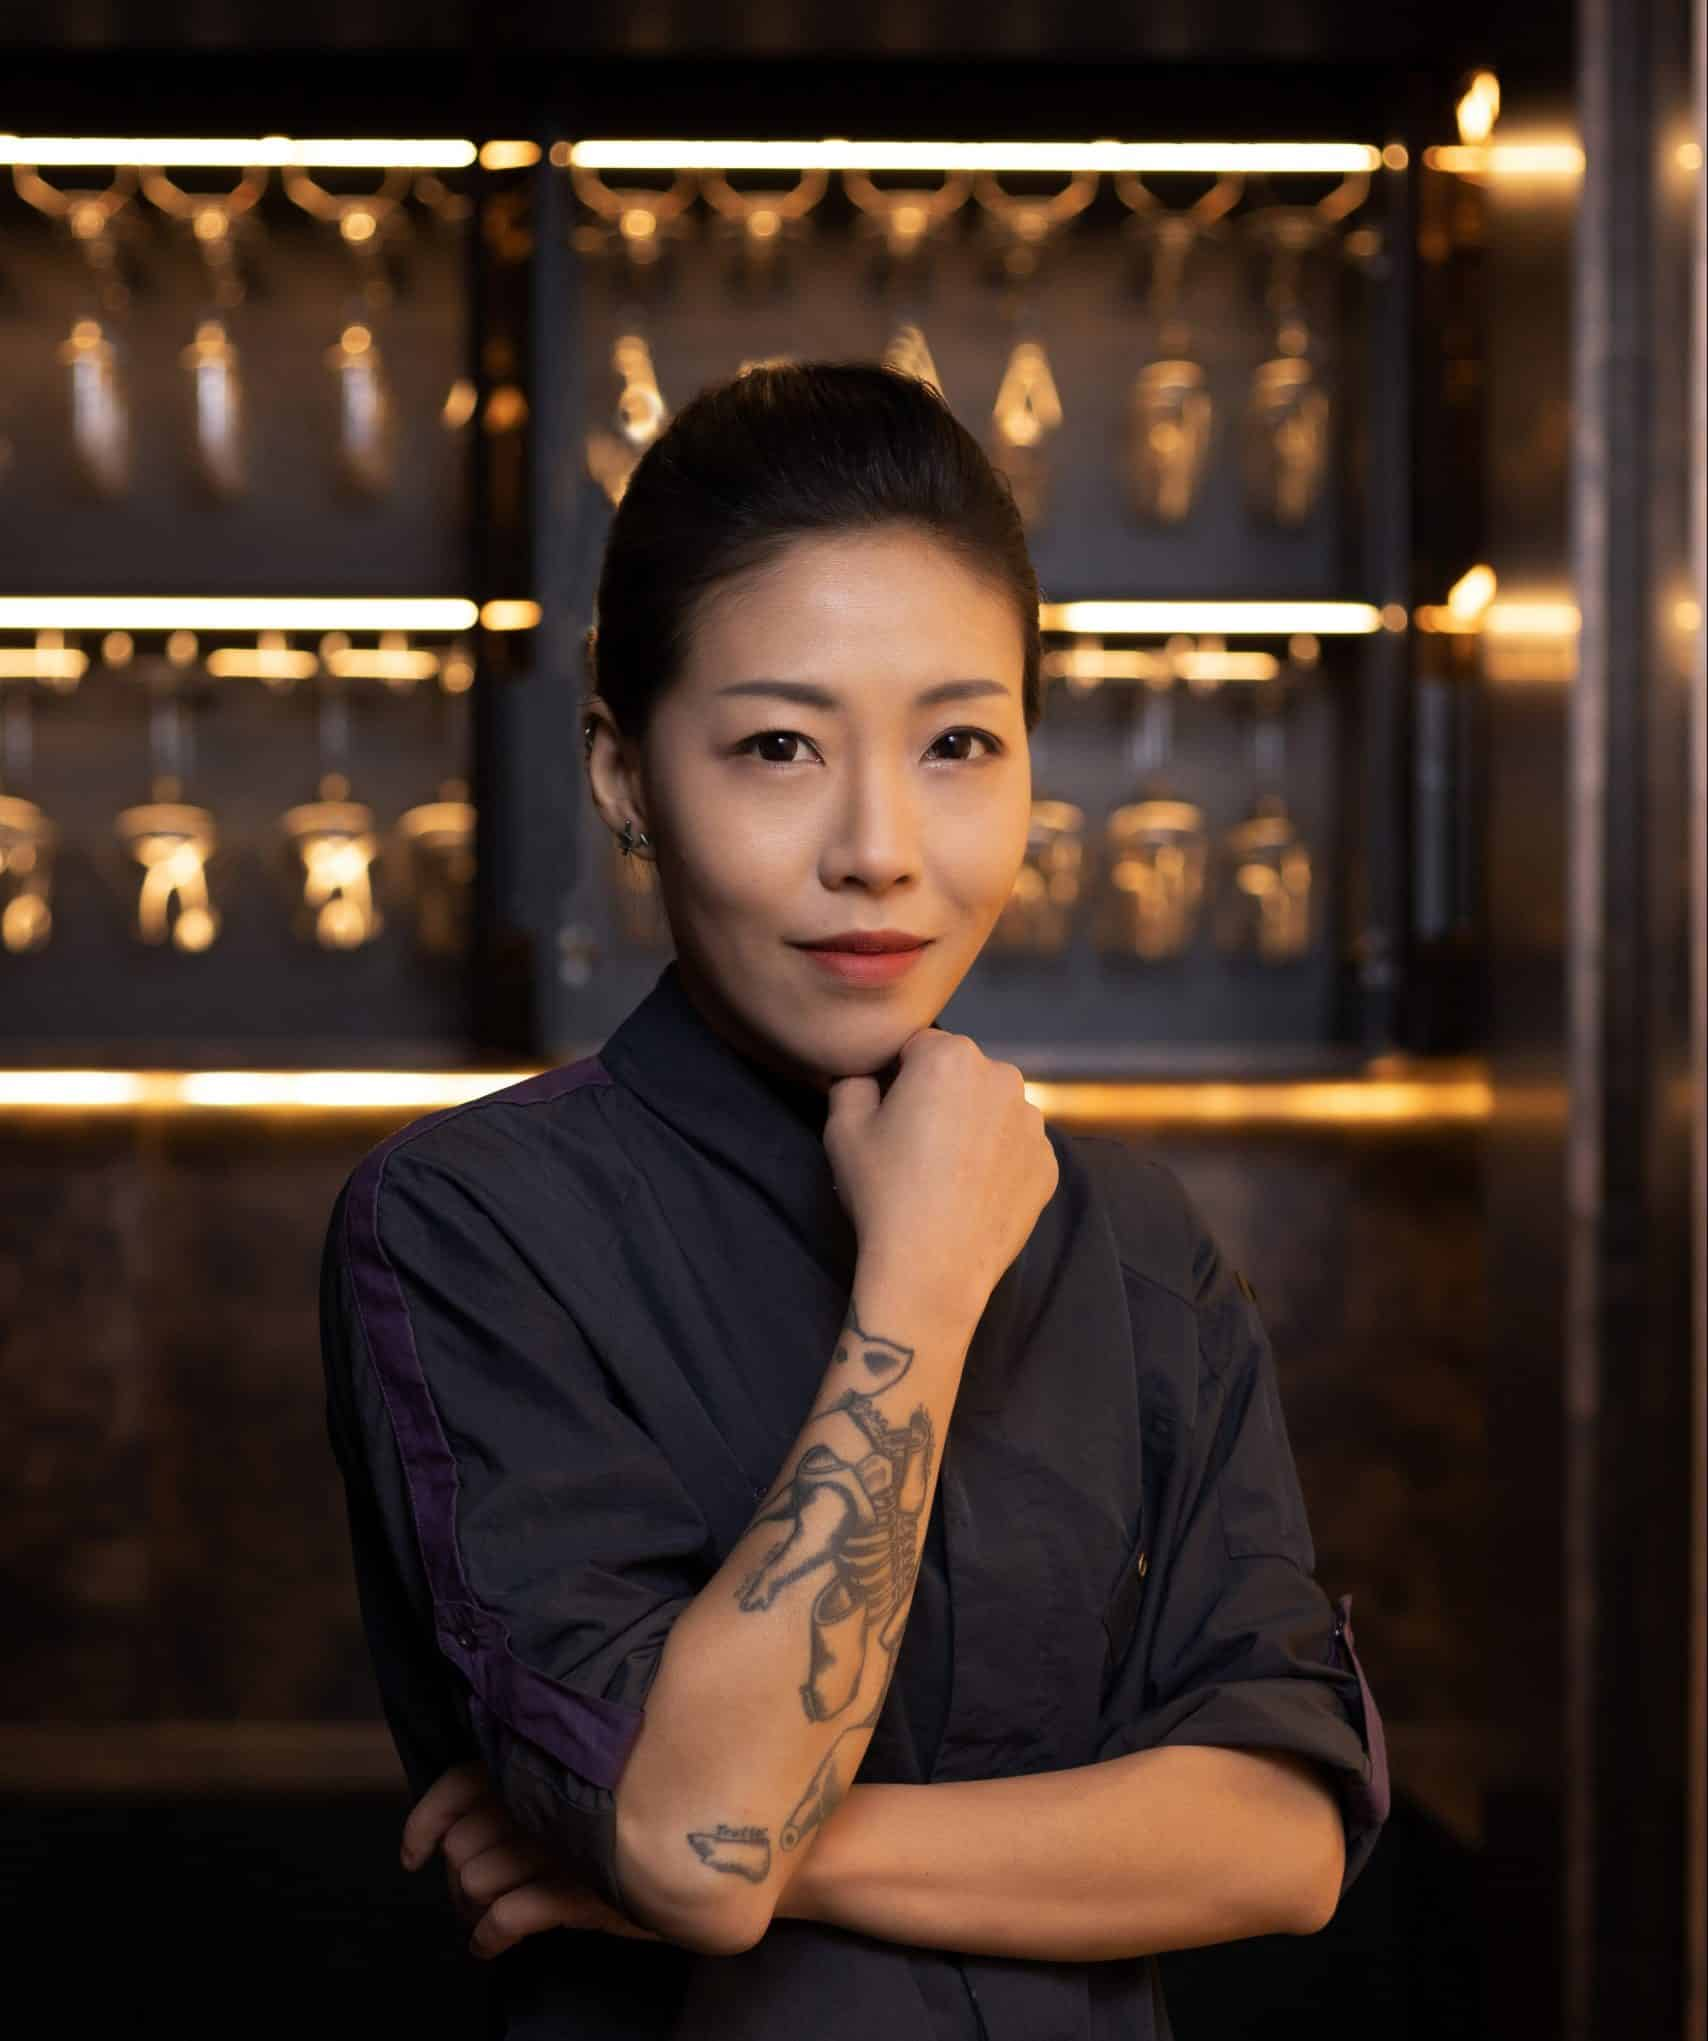 Asias-Best-Female-Chef-PR-image_William-Reed-Business-Media-scaled-e1614246291890